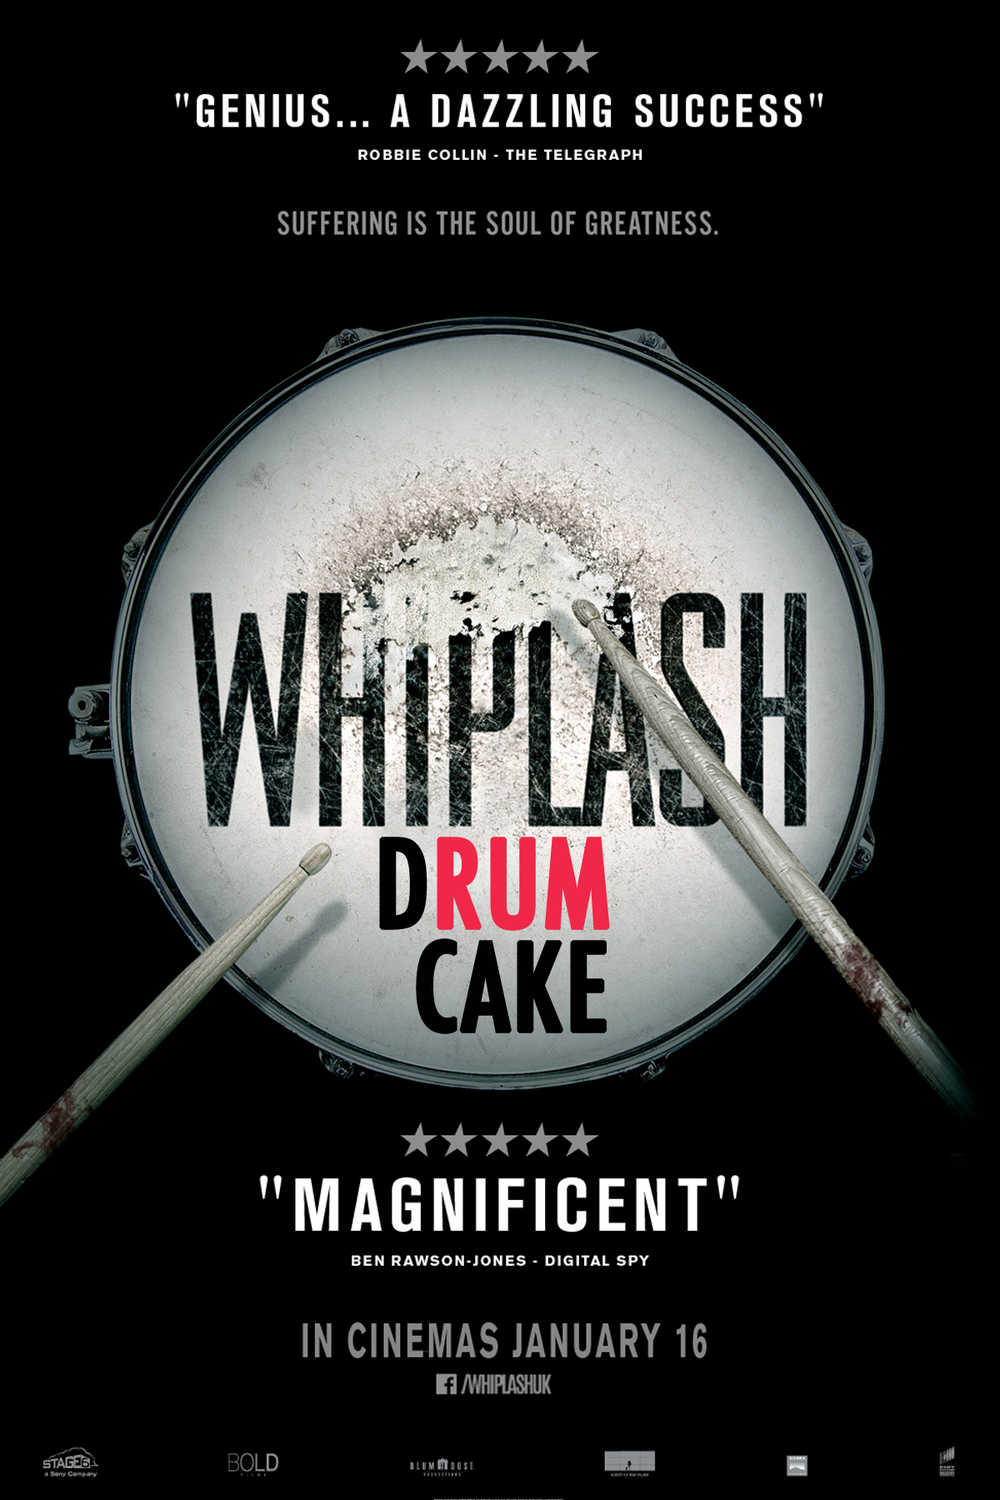 Whiplash Drum Cake